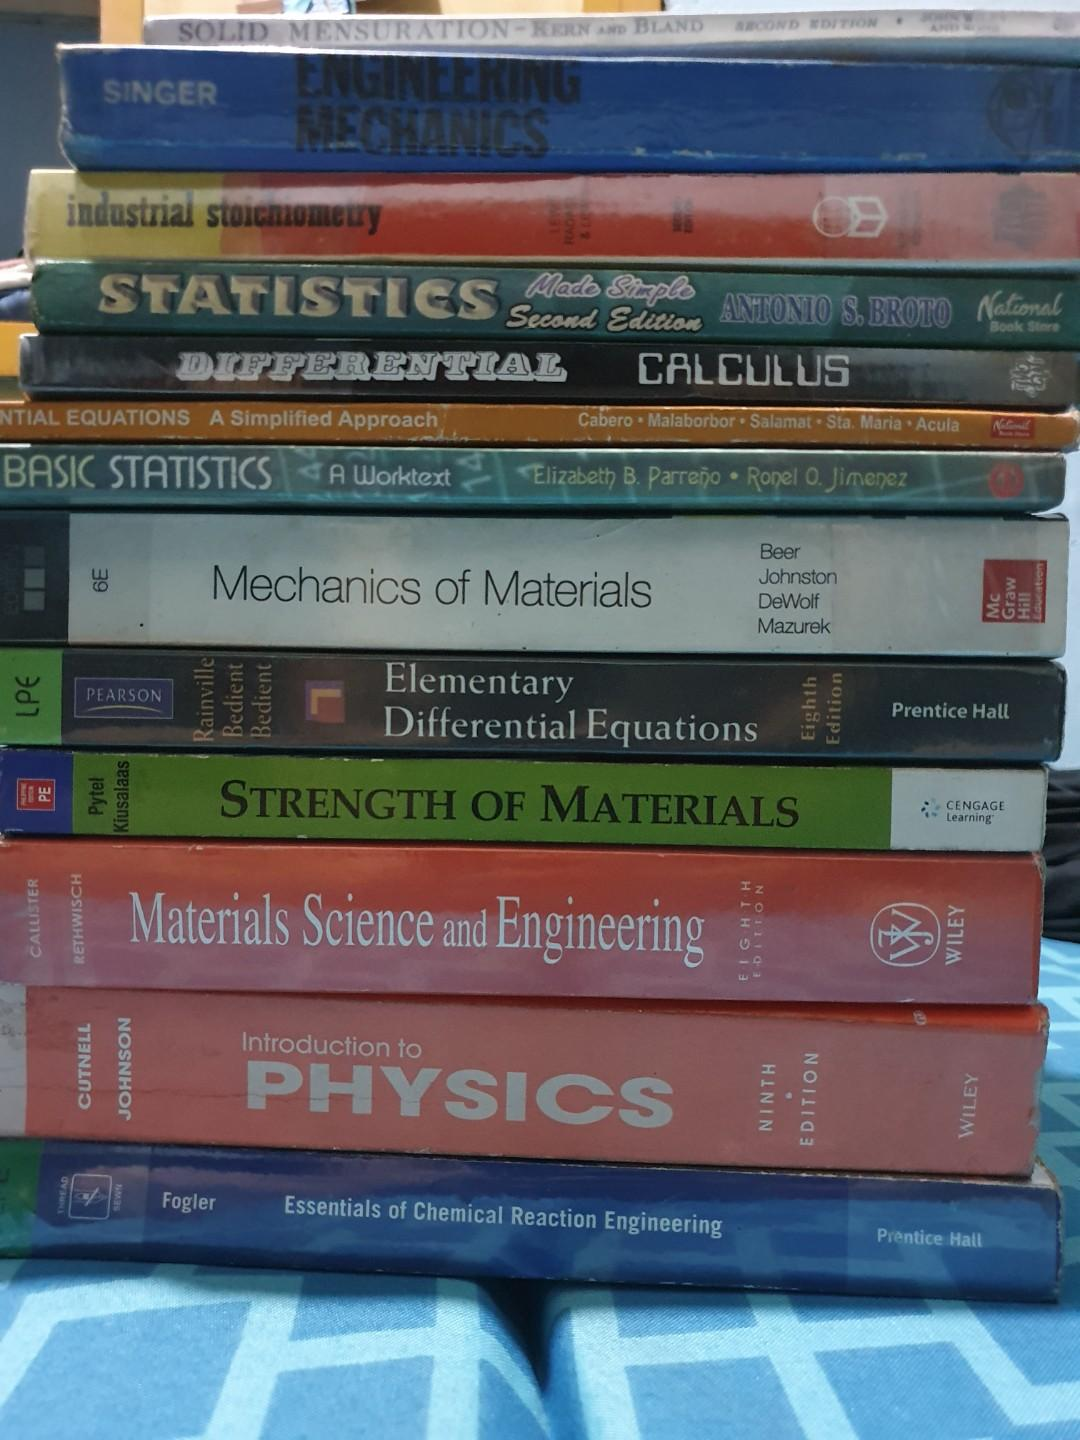 Math Engineering Physics Calculus Satistics Books order til March 5 only